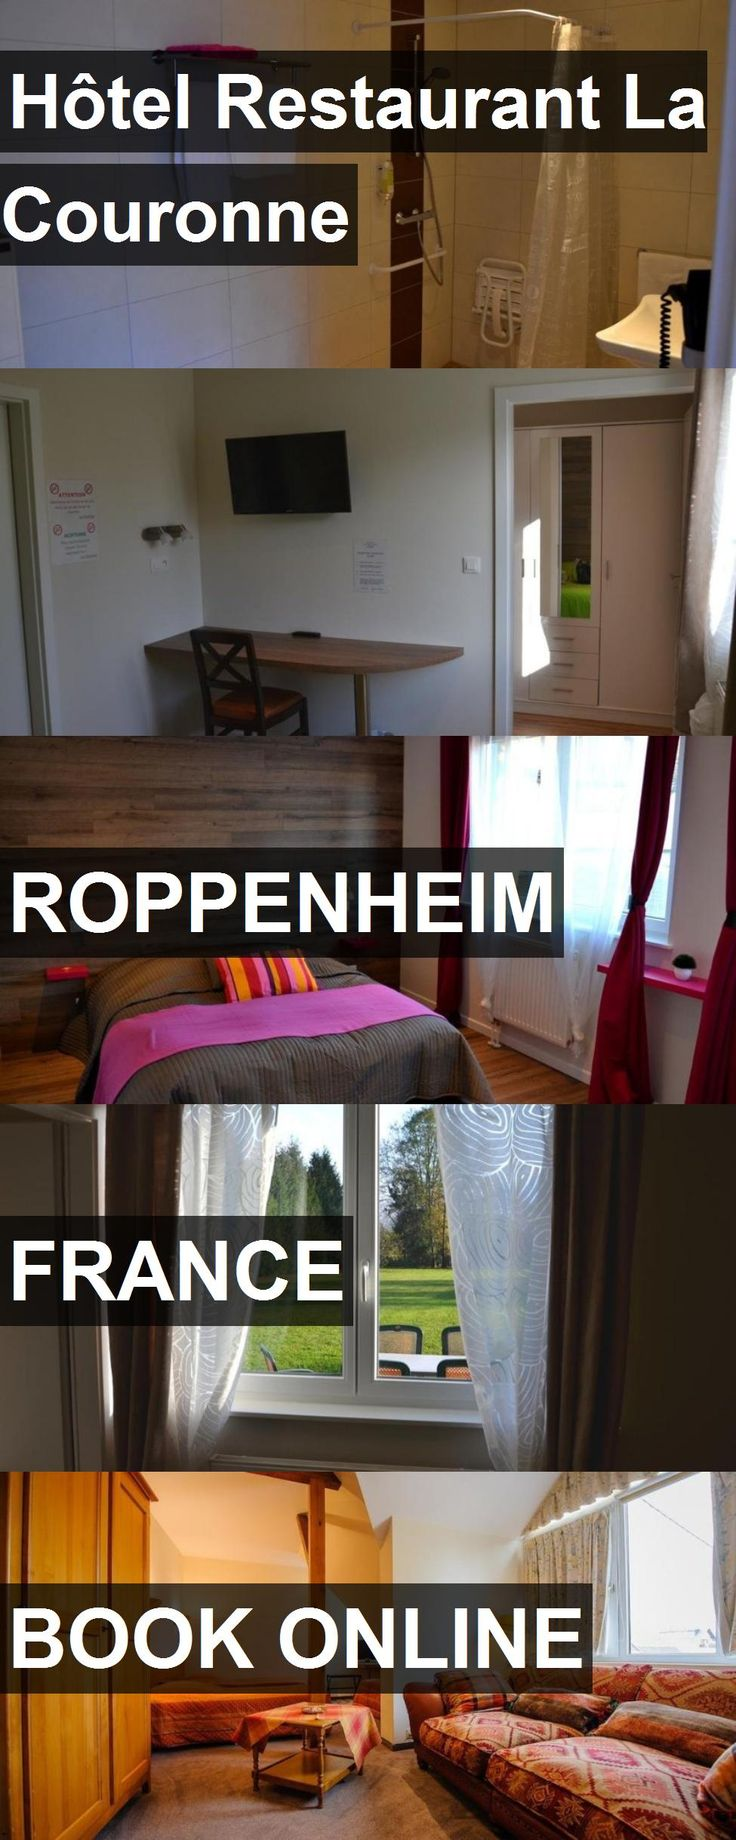 Hotel Hôtel Restaurant La Couronne in Roppenheim, France. For more information, photos, reviews and best prices please follow the link. #France #Roppenheim #travel #vacation #hotel